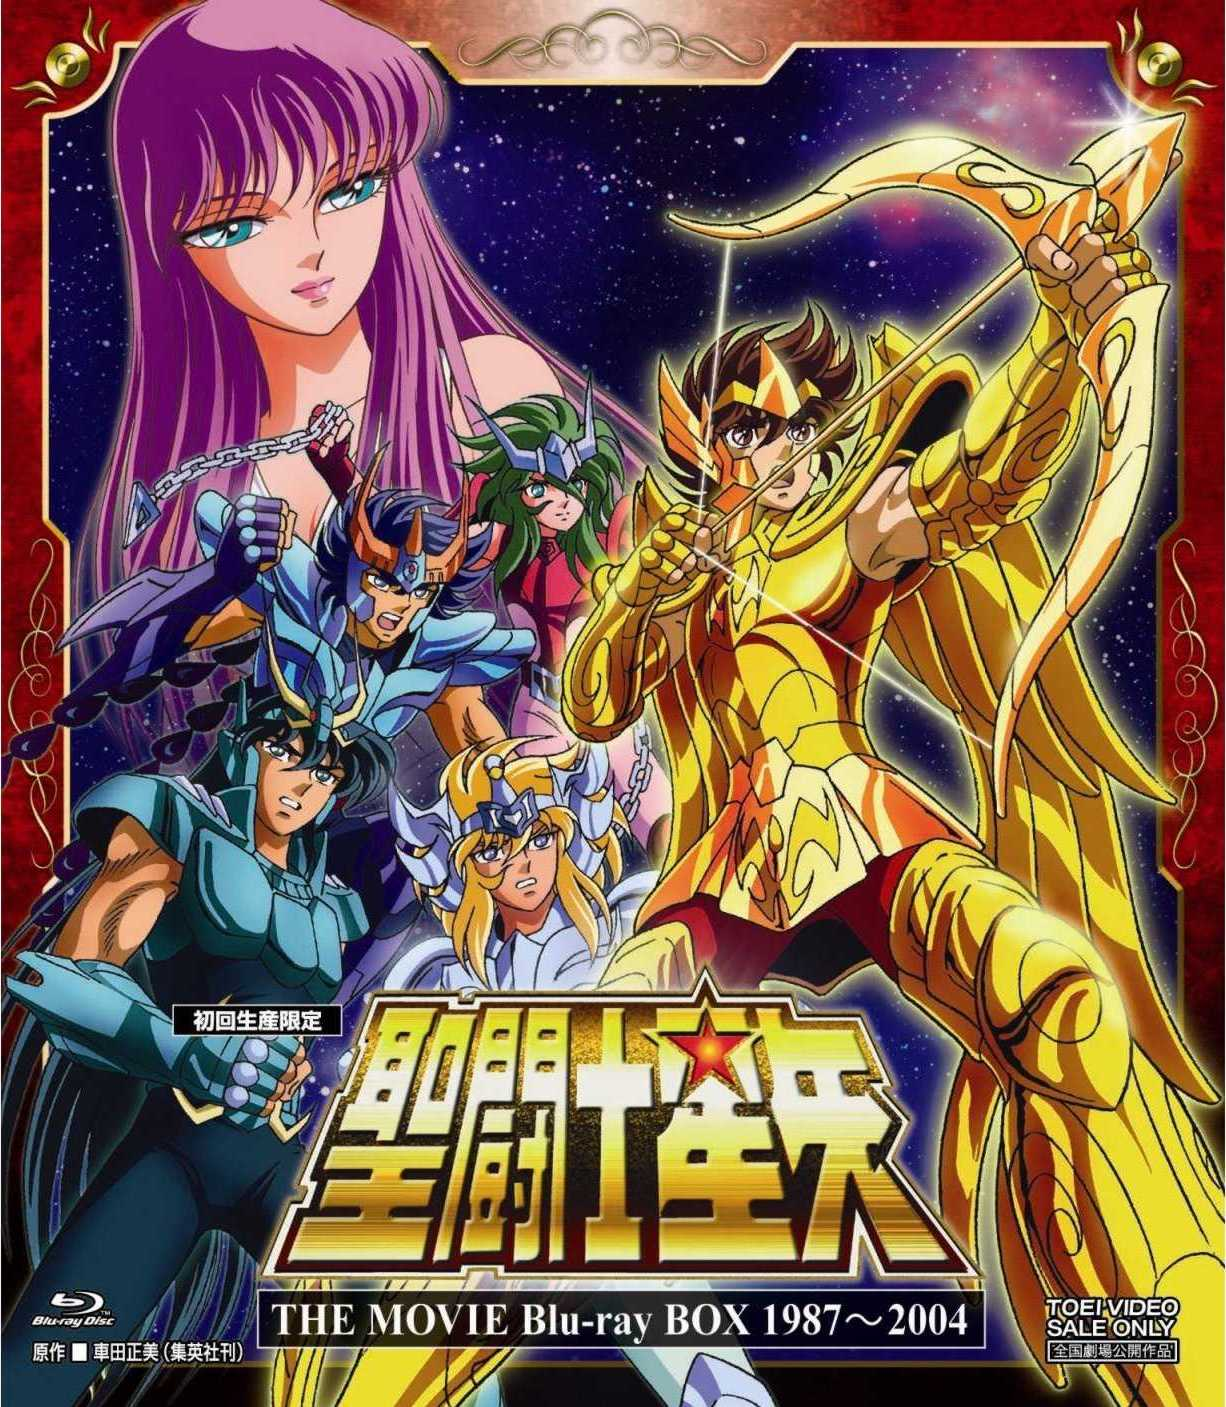 Saint Seiya The Movie Box Blu-ray: First Press Limited